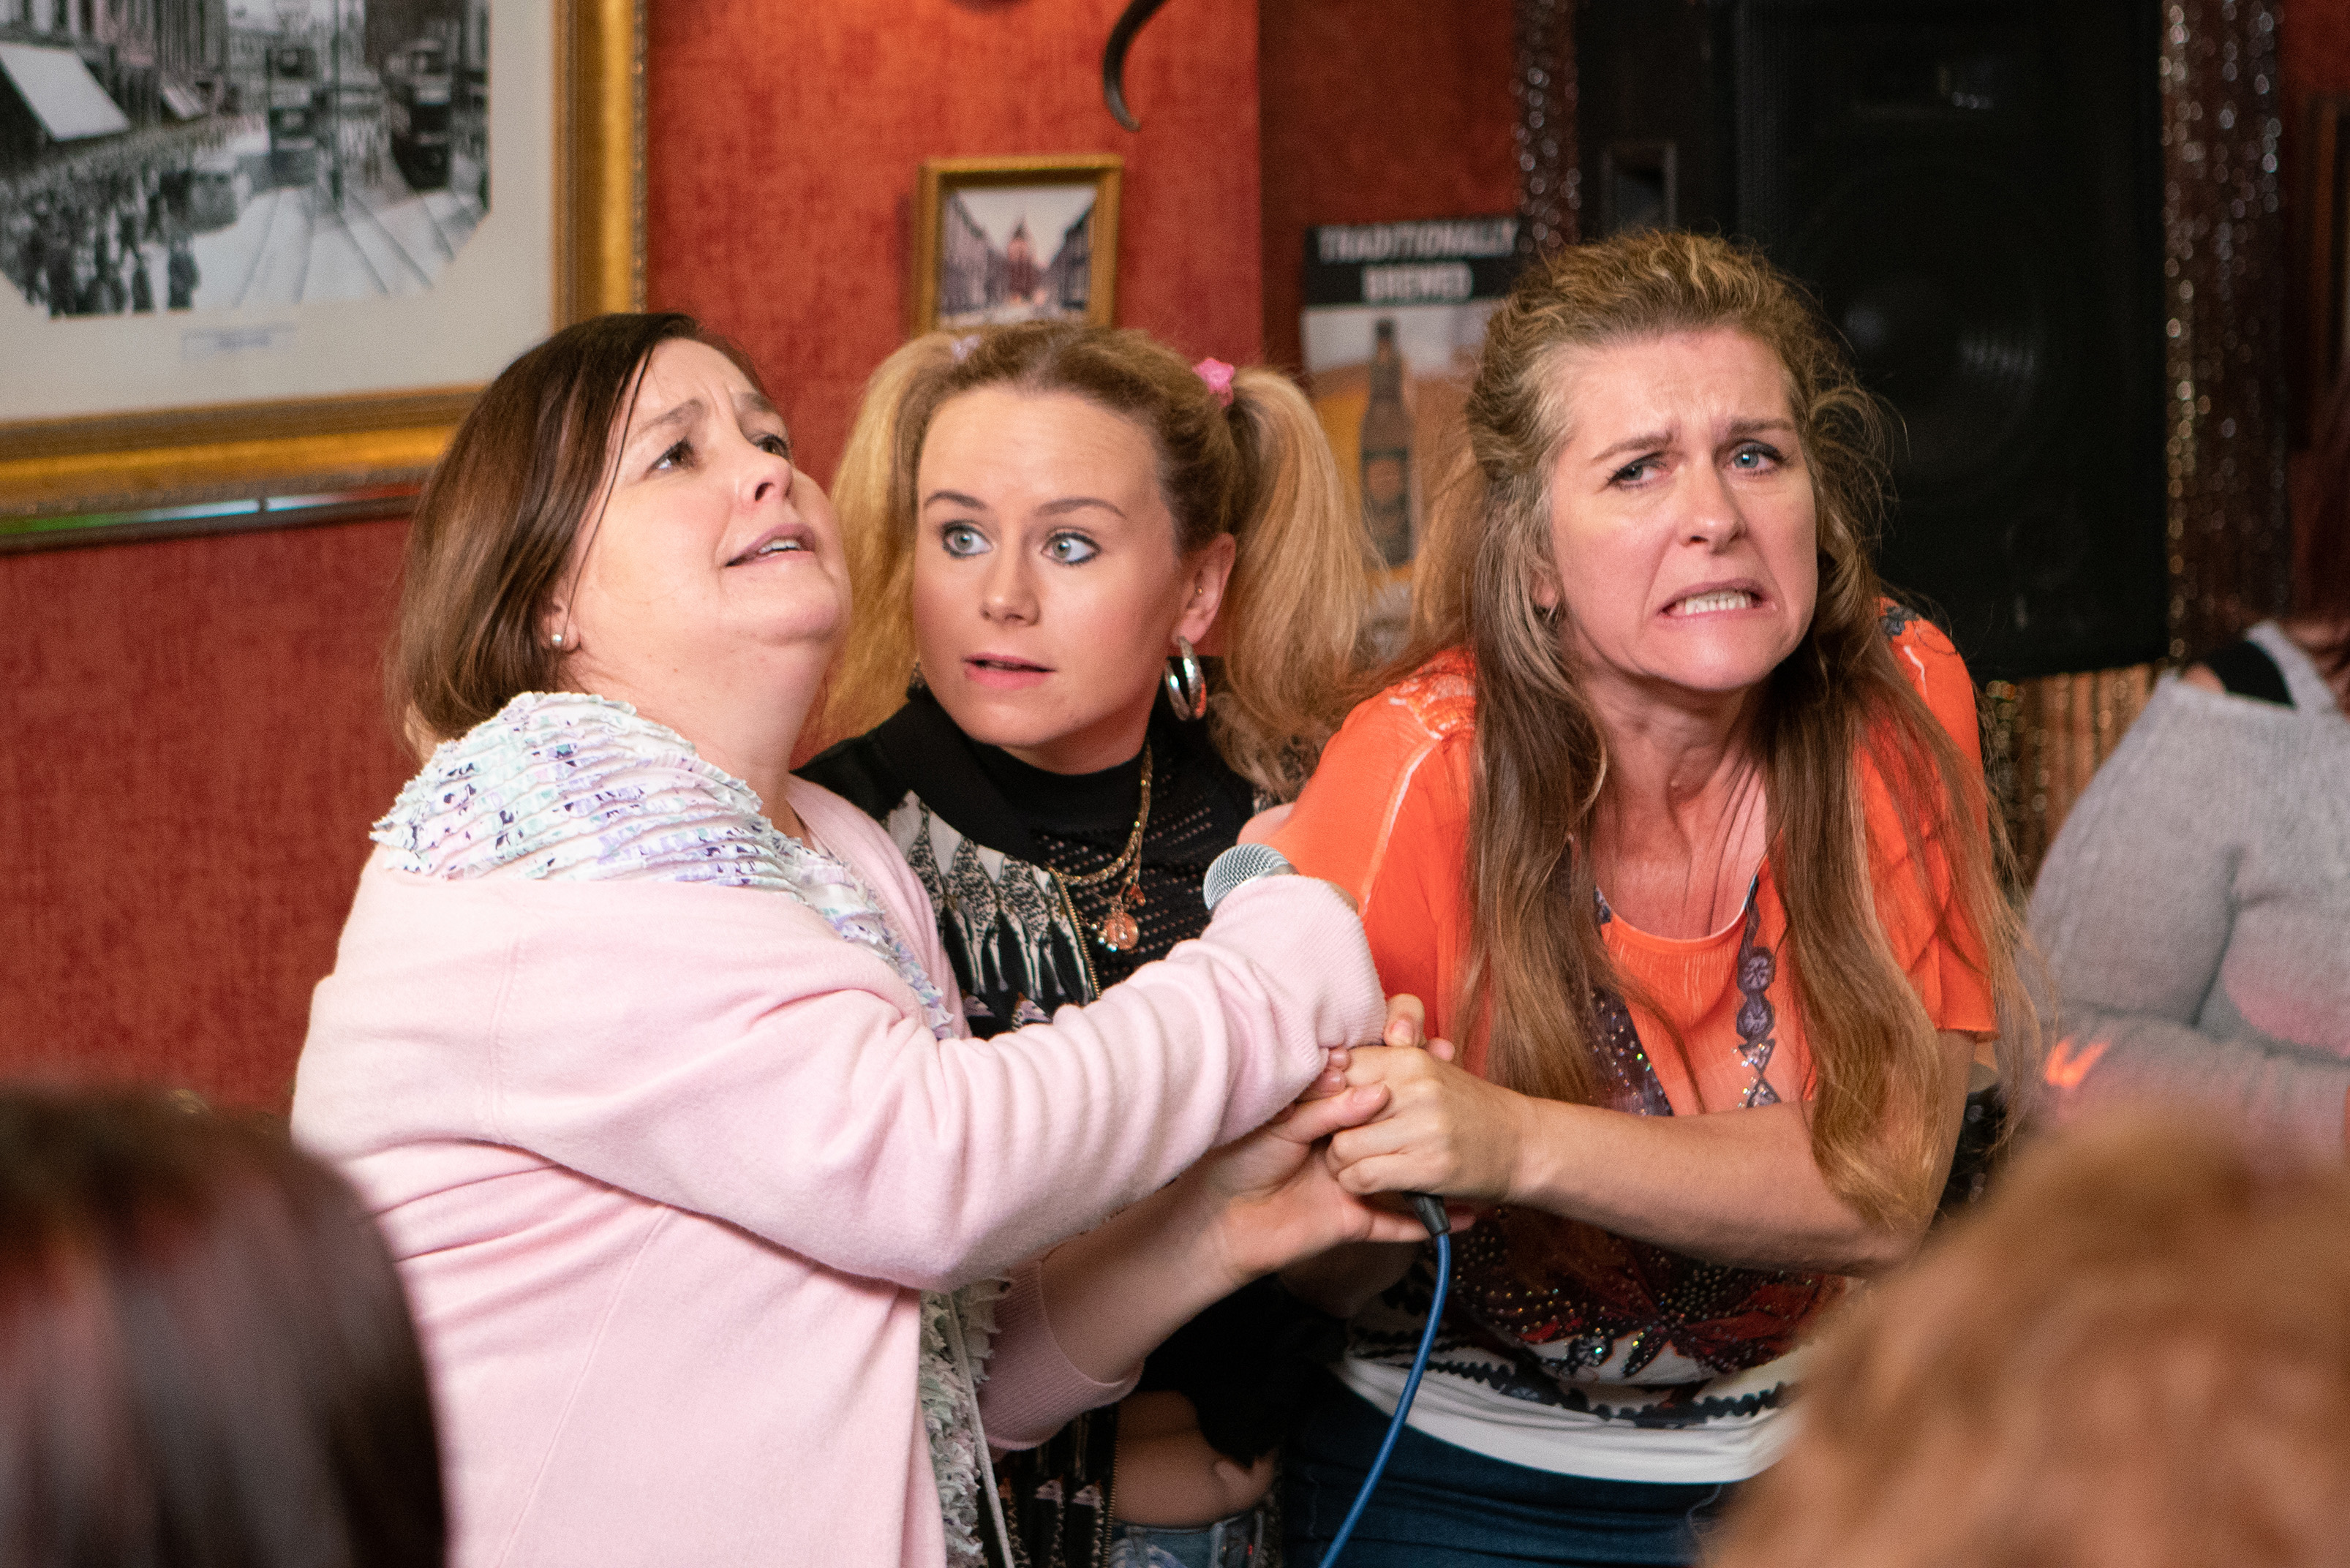 Corrie spoilers: The Connors steal Gemma Winter's Rovers dream